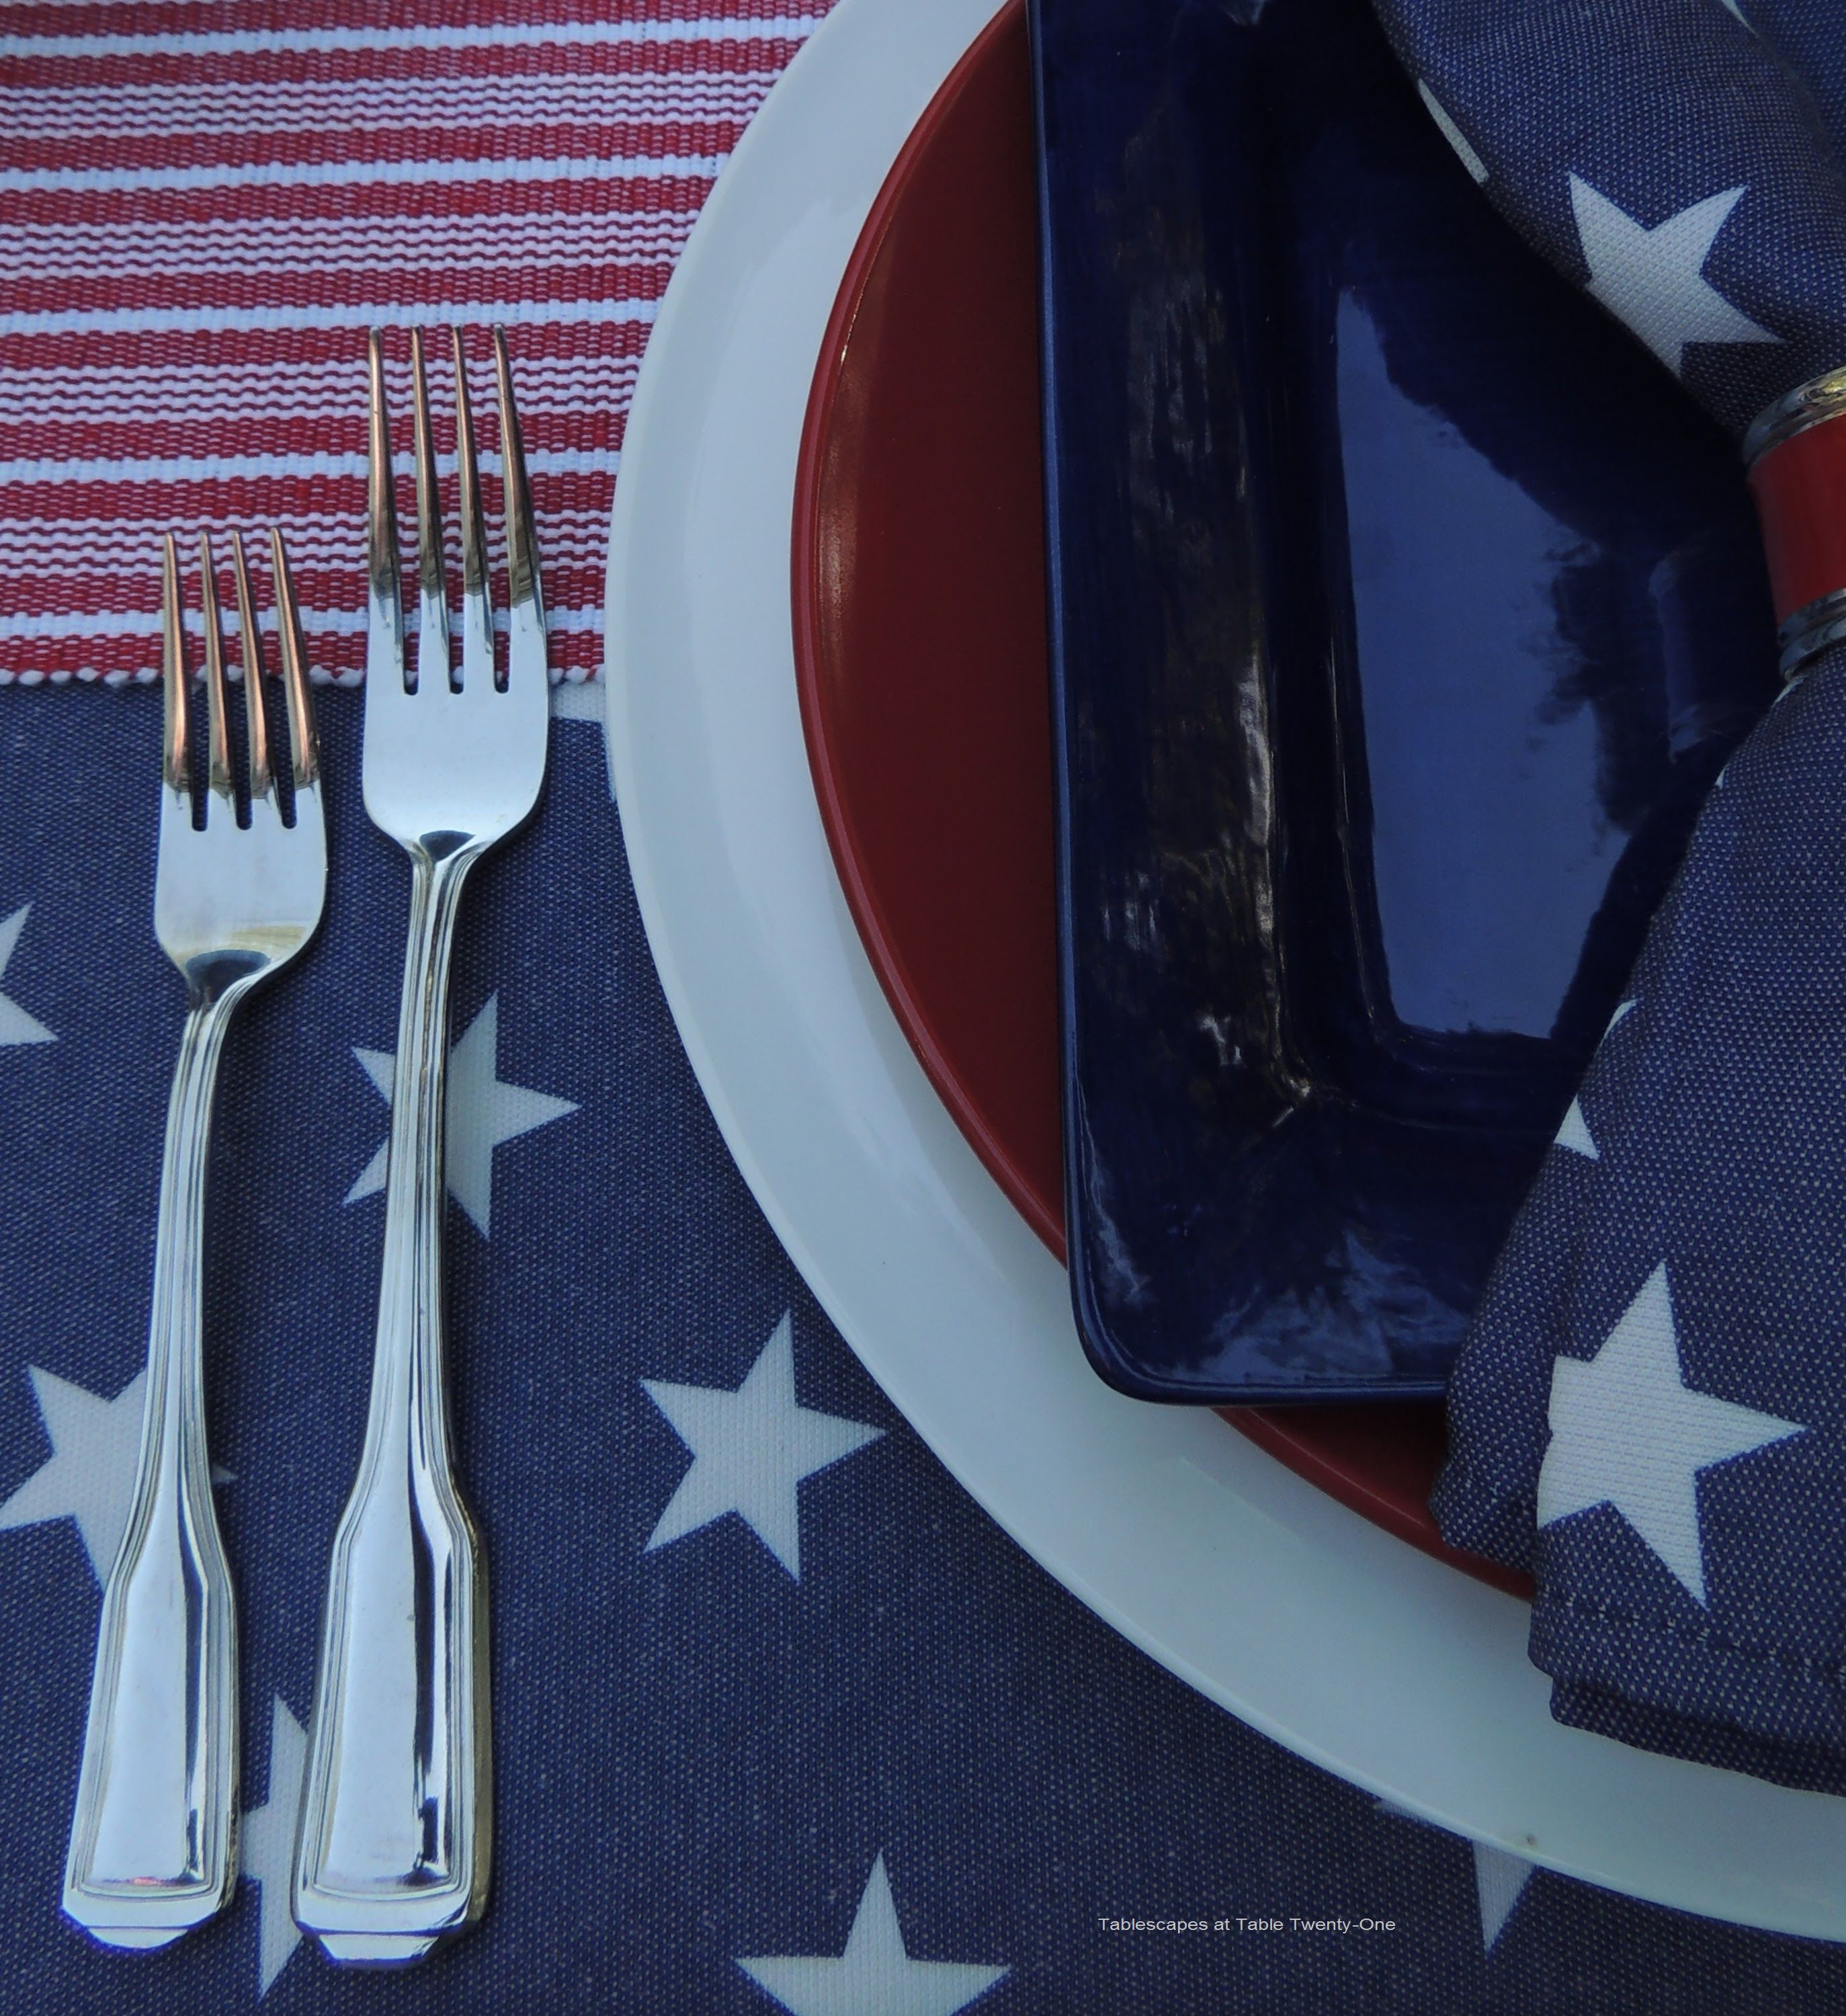 ... Settings Are Created By Using A White Ceramic Charger From Old Time  Pottery Topped With A Red Dinner Plate And Square Blue Salad Plate From Pier  1.